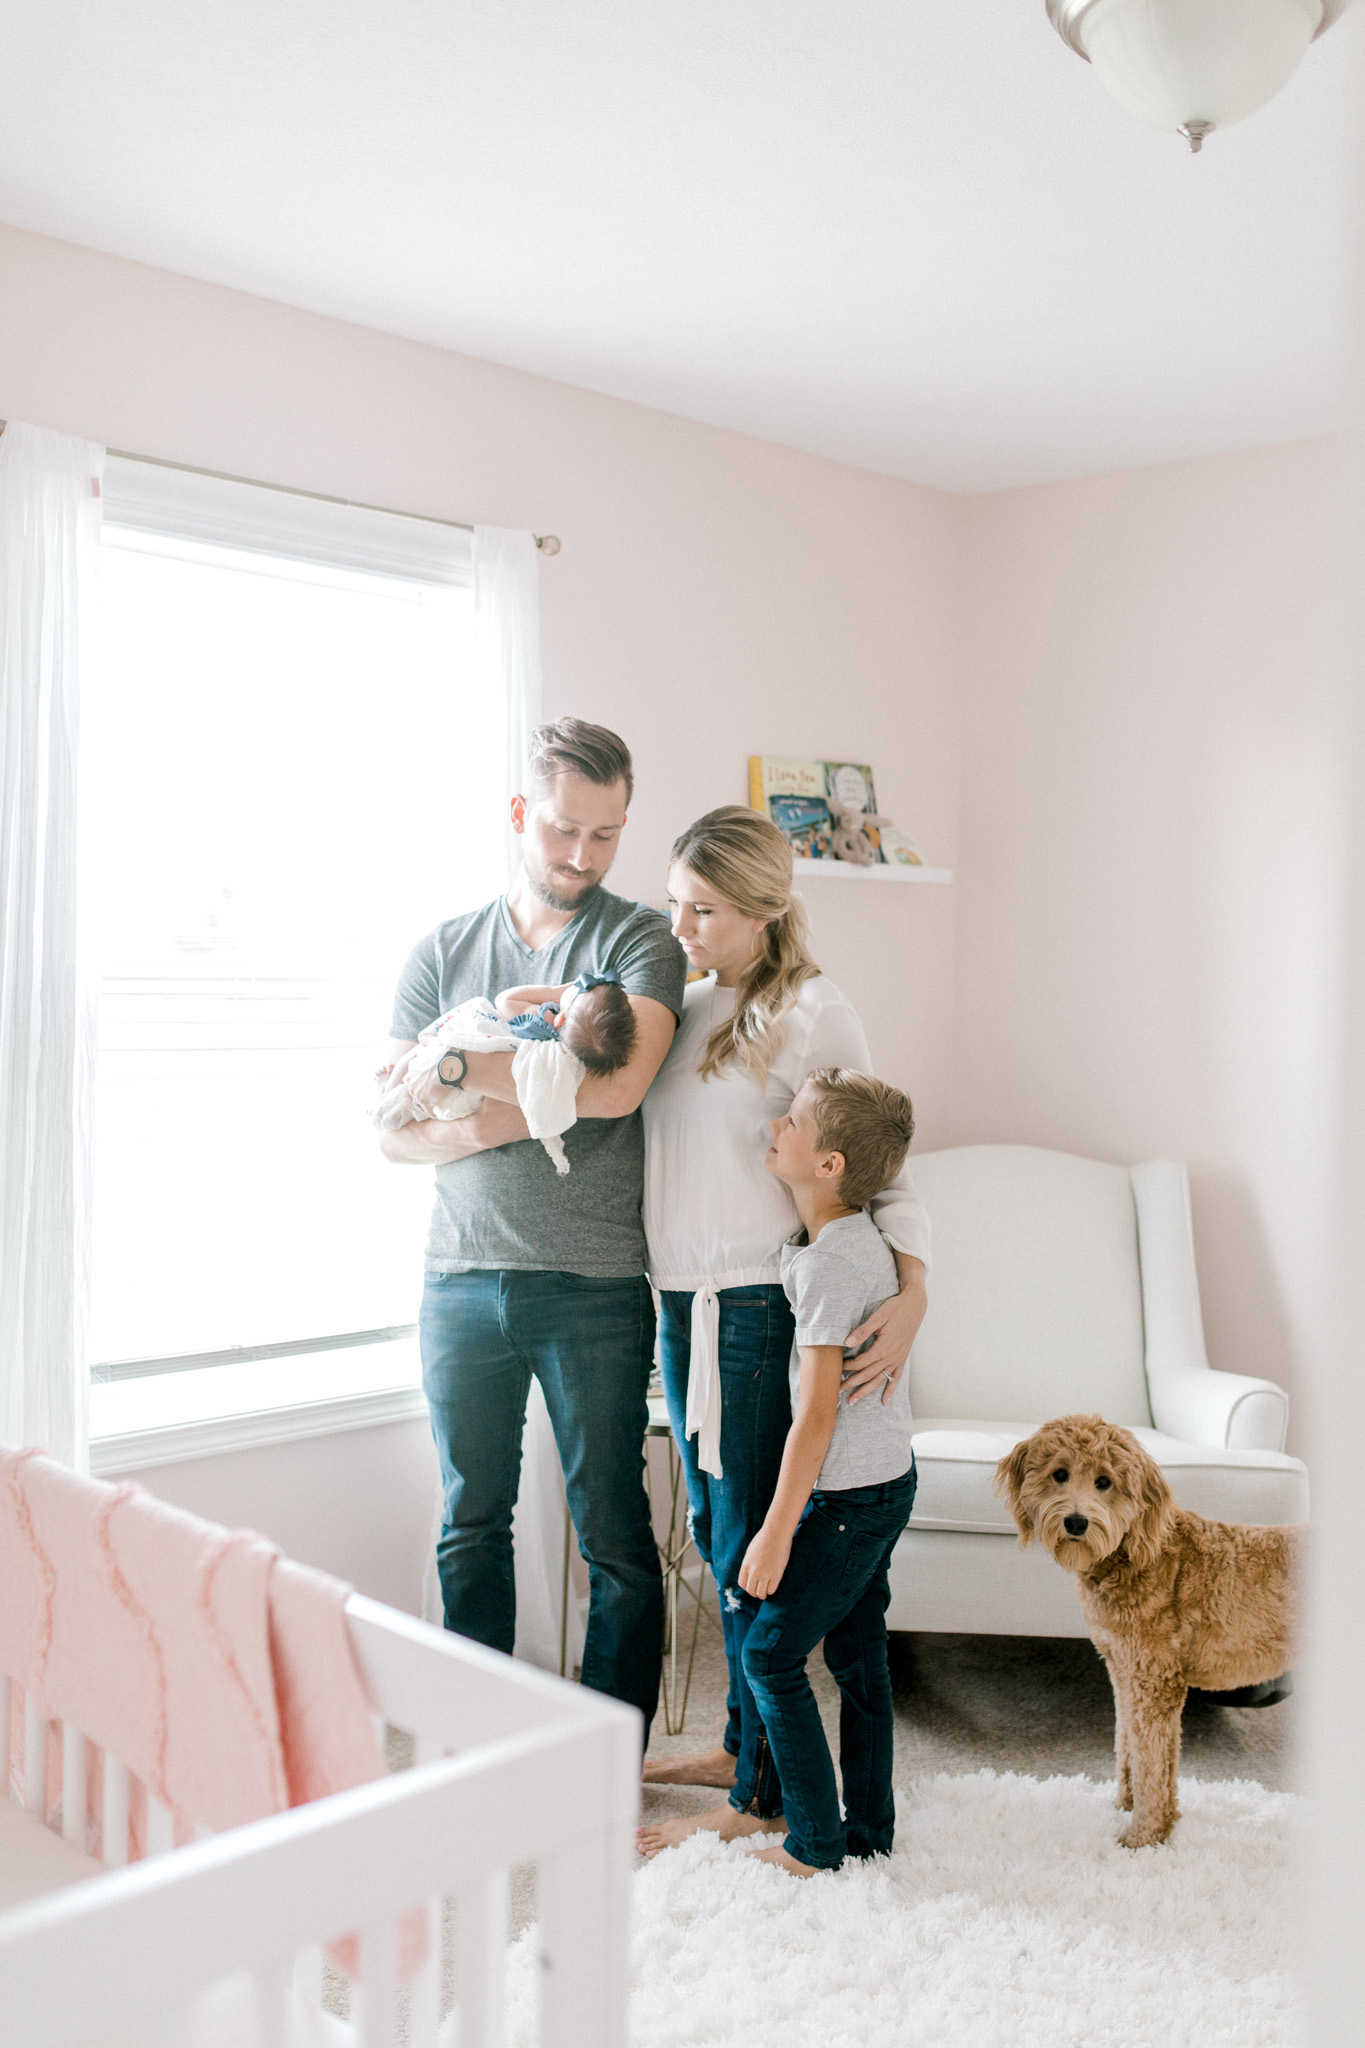 Blush Pink Baby Girl Nursery | Light & Airy Nursery | White, Pink, and Gold Nursery | In-Home Newborn Lifestyle Session | Laurenda Marie Photography